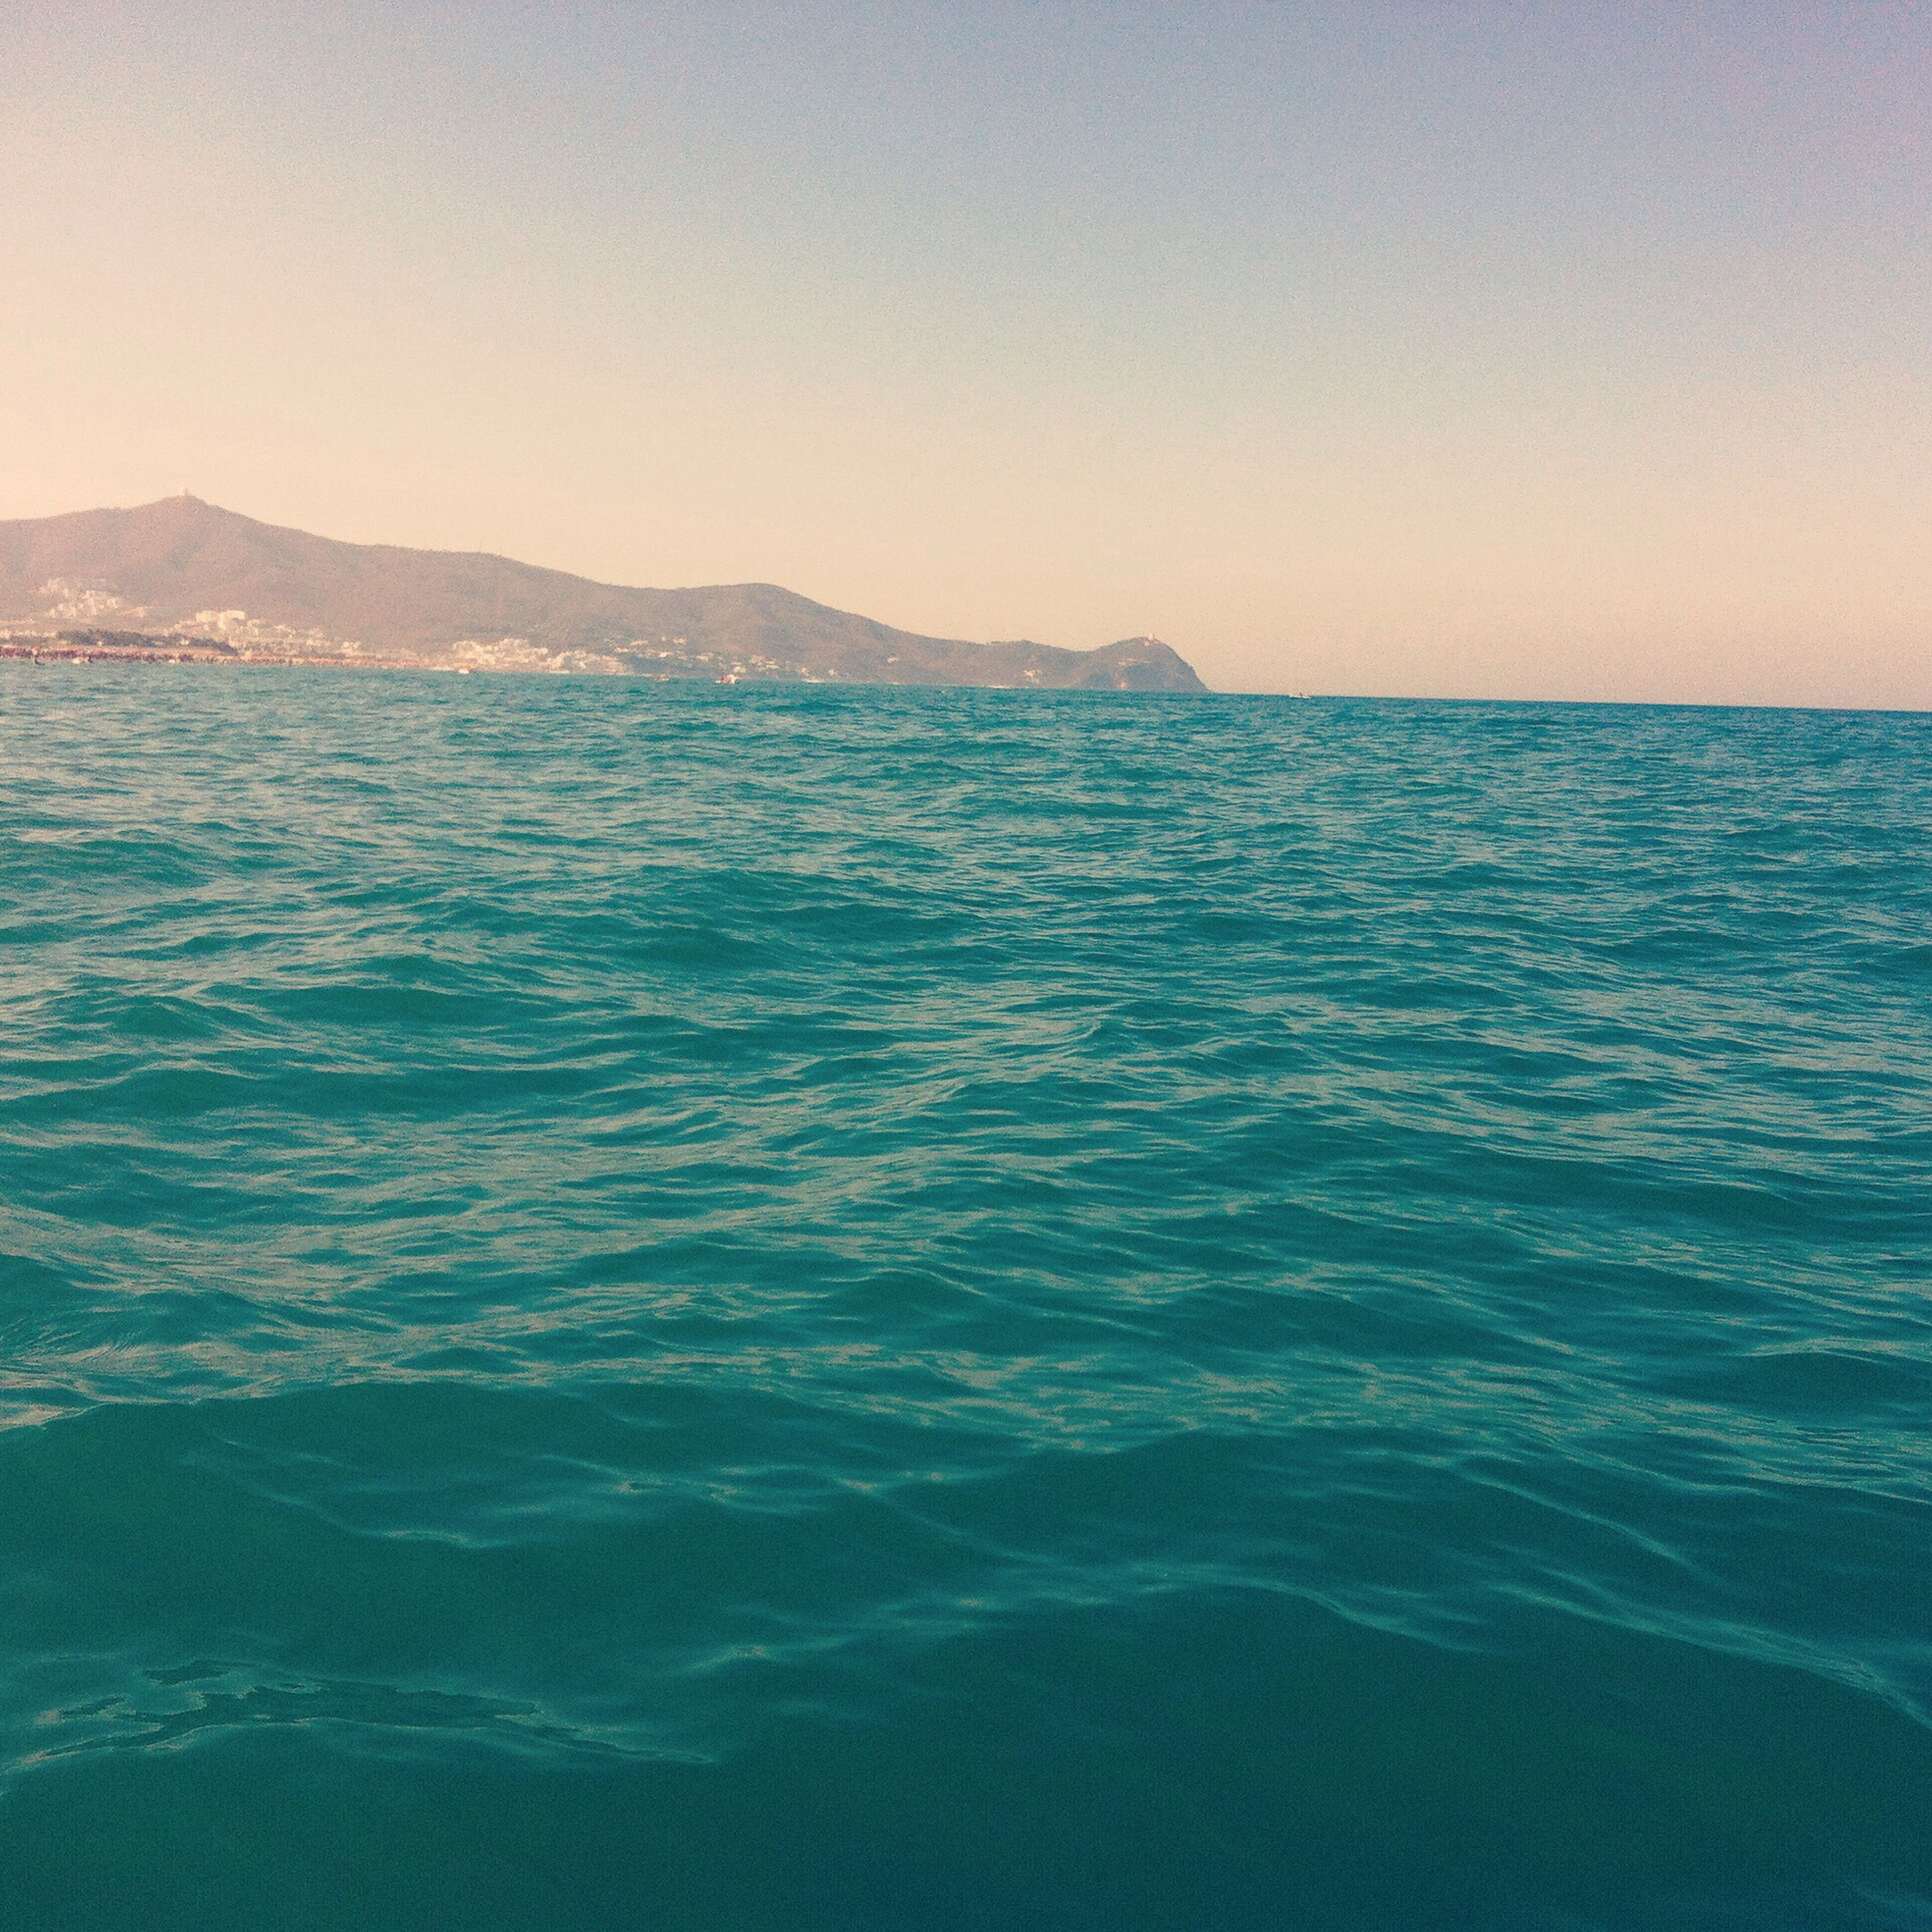 water, sea, scenics, tranquil scene, waterfront, beauty in nature, clear sky, tranquility, rippled, blue, nature, copy space, idyllic, seascape, mountain, horizon over water, outdoors, remote, wave, sky